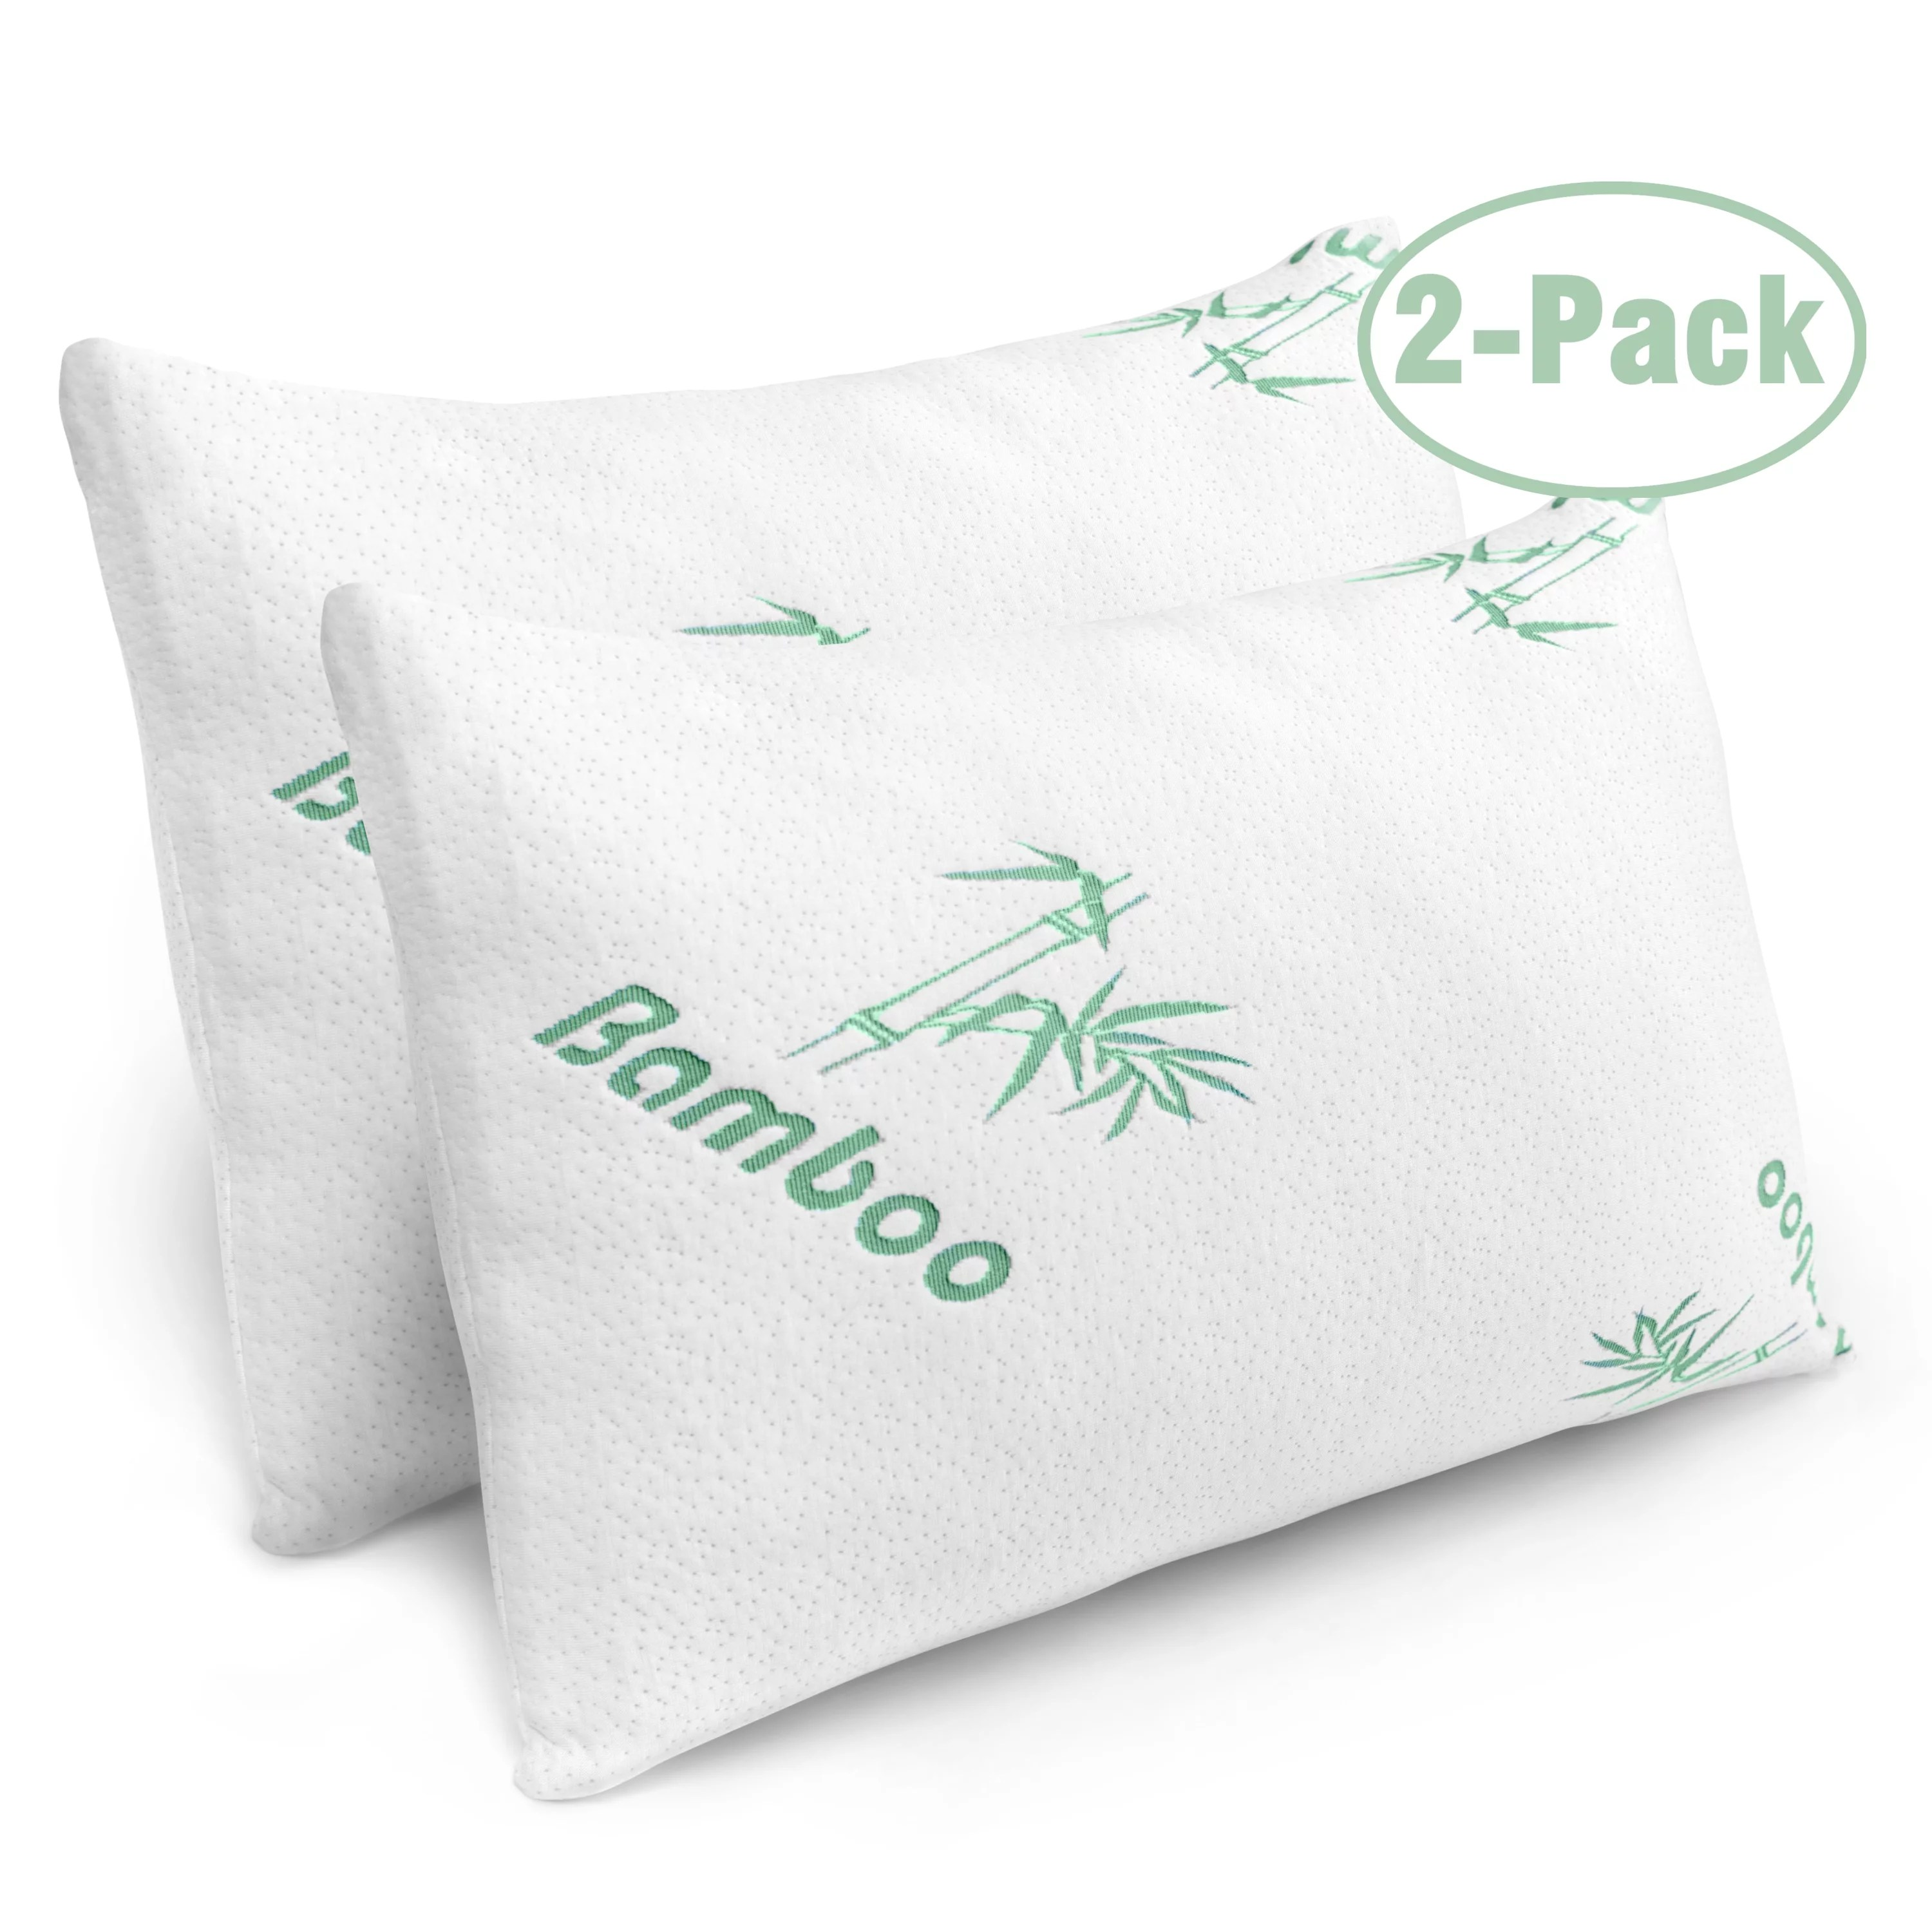 2 pack plixio shredded memory foam pillow with cooling hypoallergenic cover queen size bed pillows for sleeping